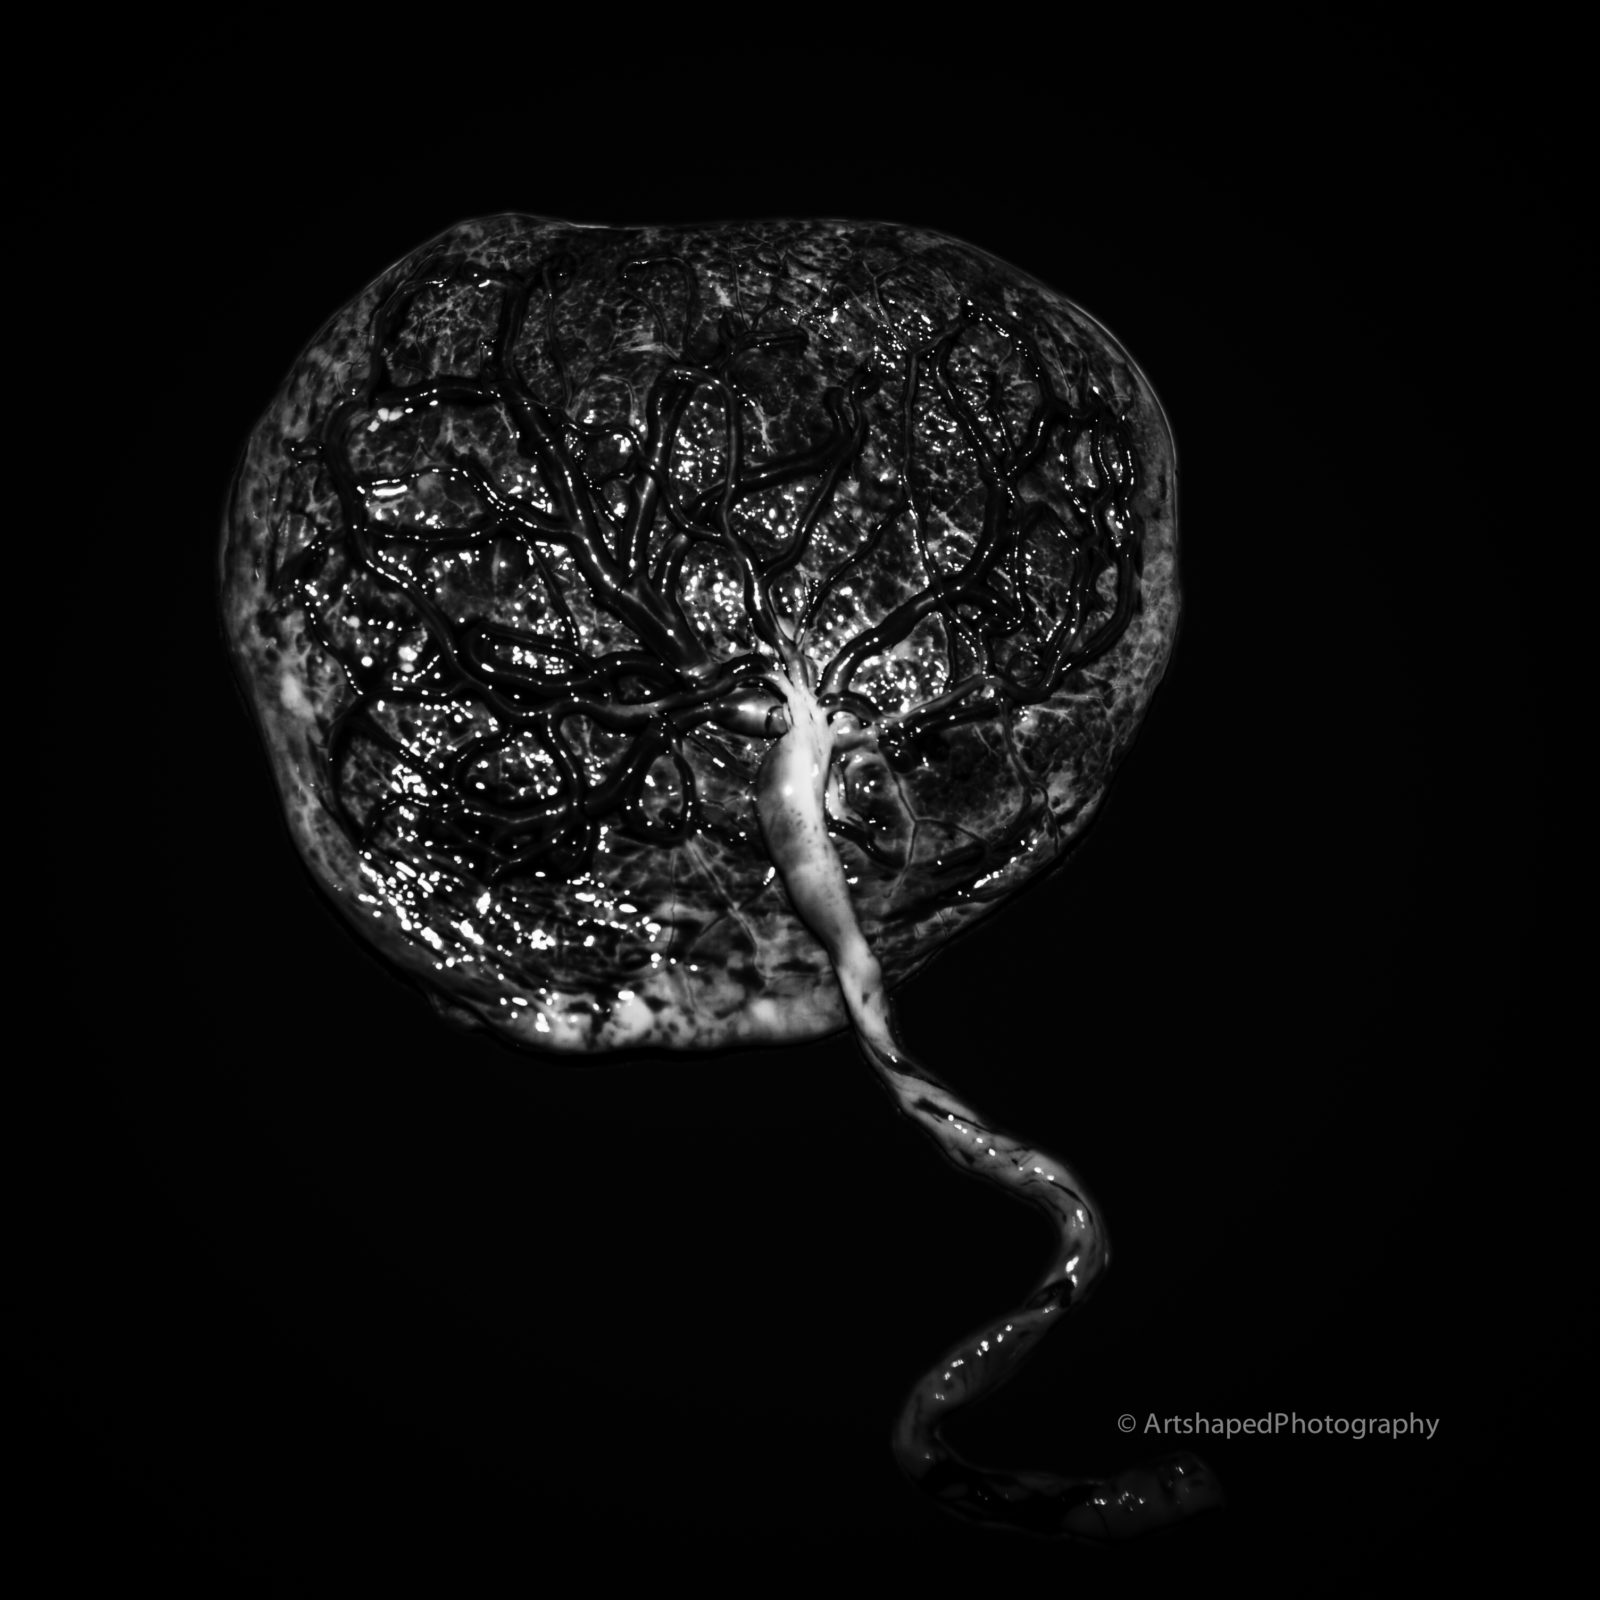 Black and white image of a placenta and its cord photographed by ArtShaped Photography and Birth Services